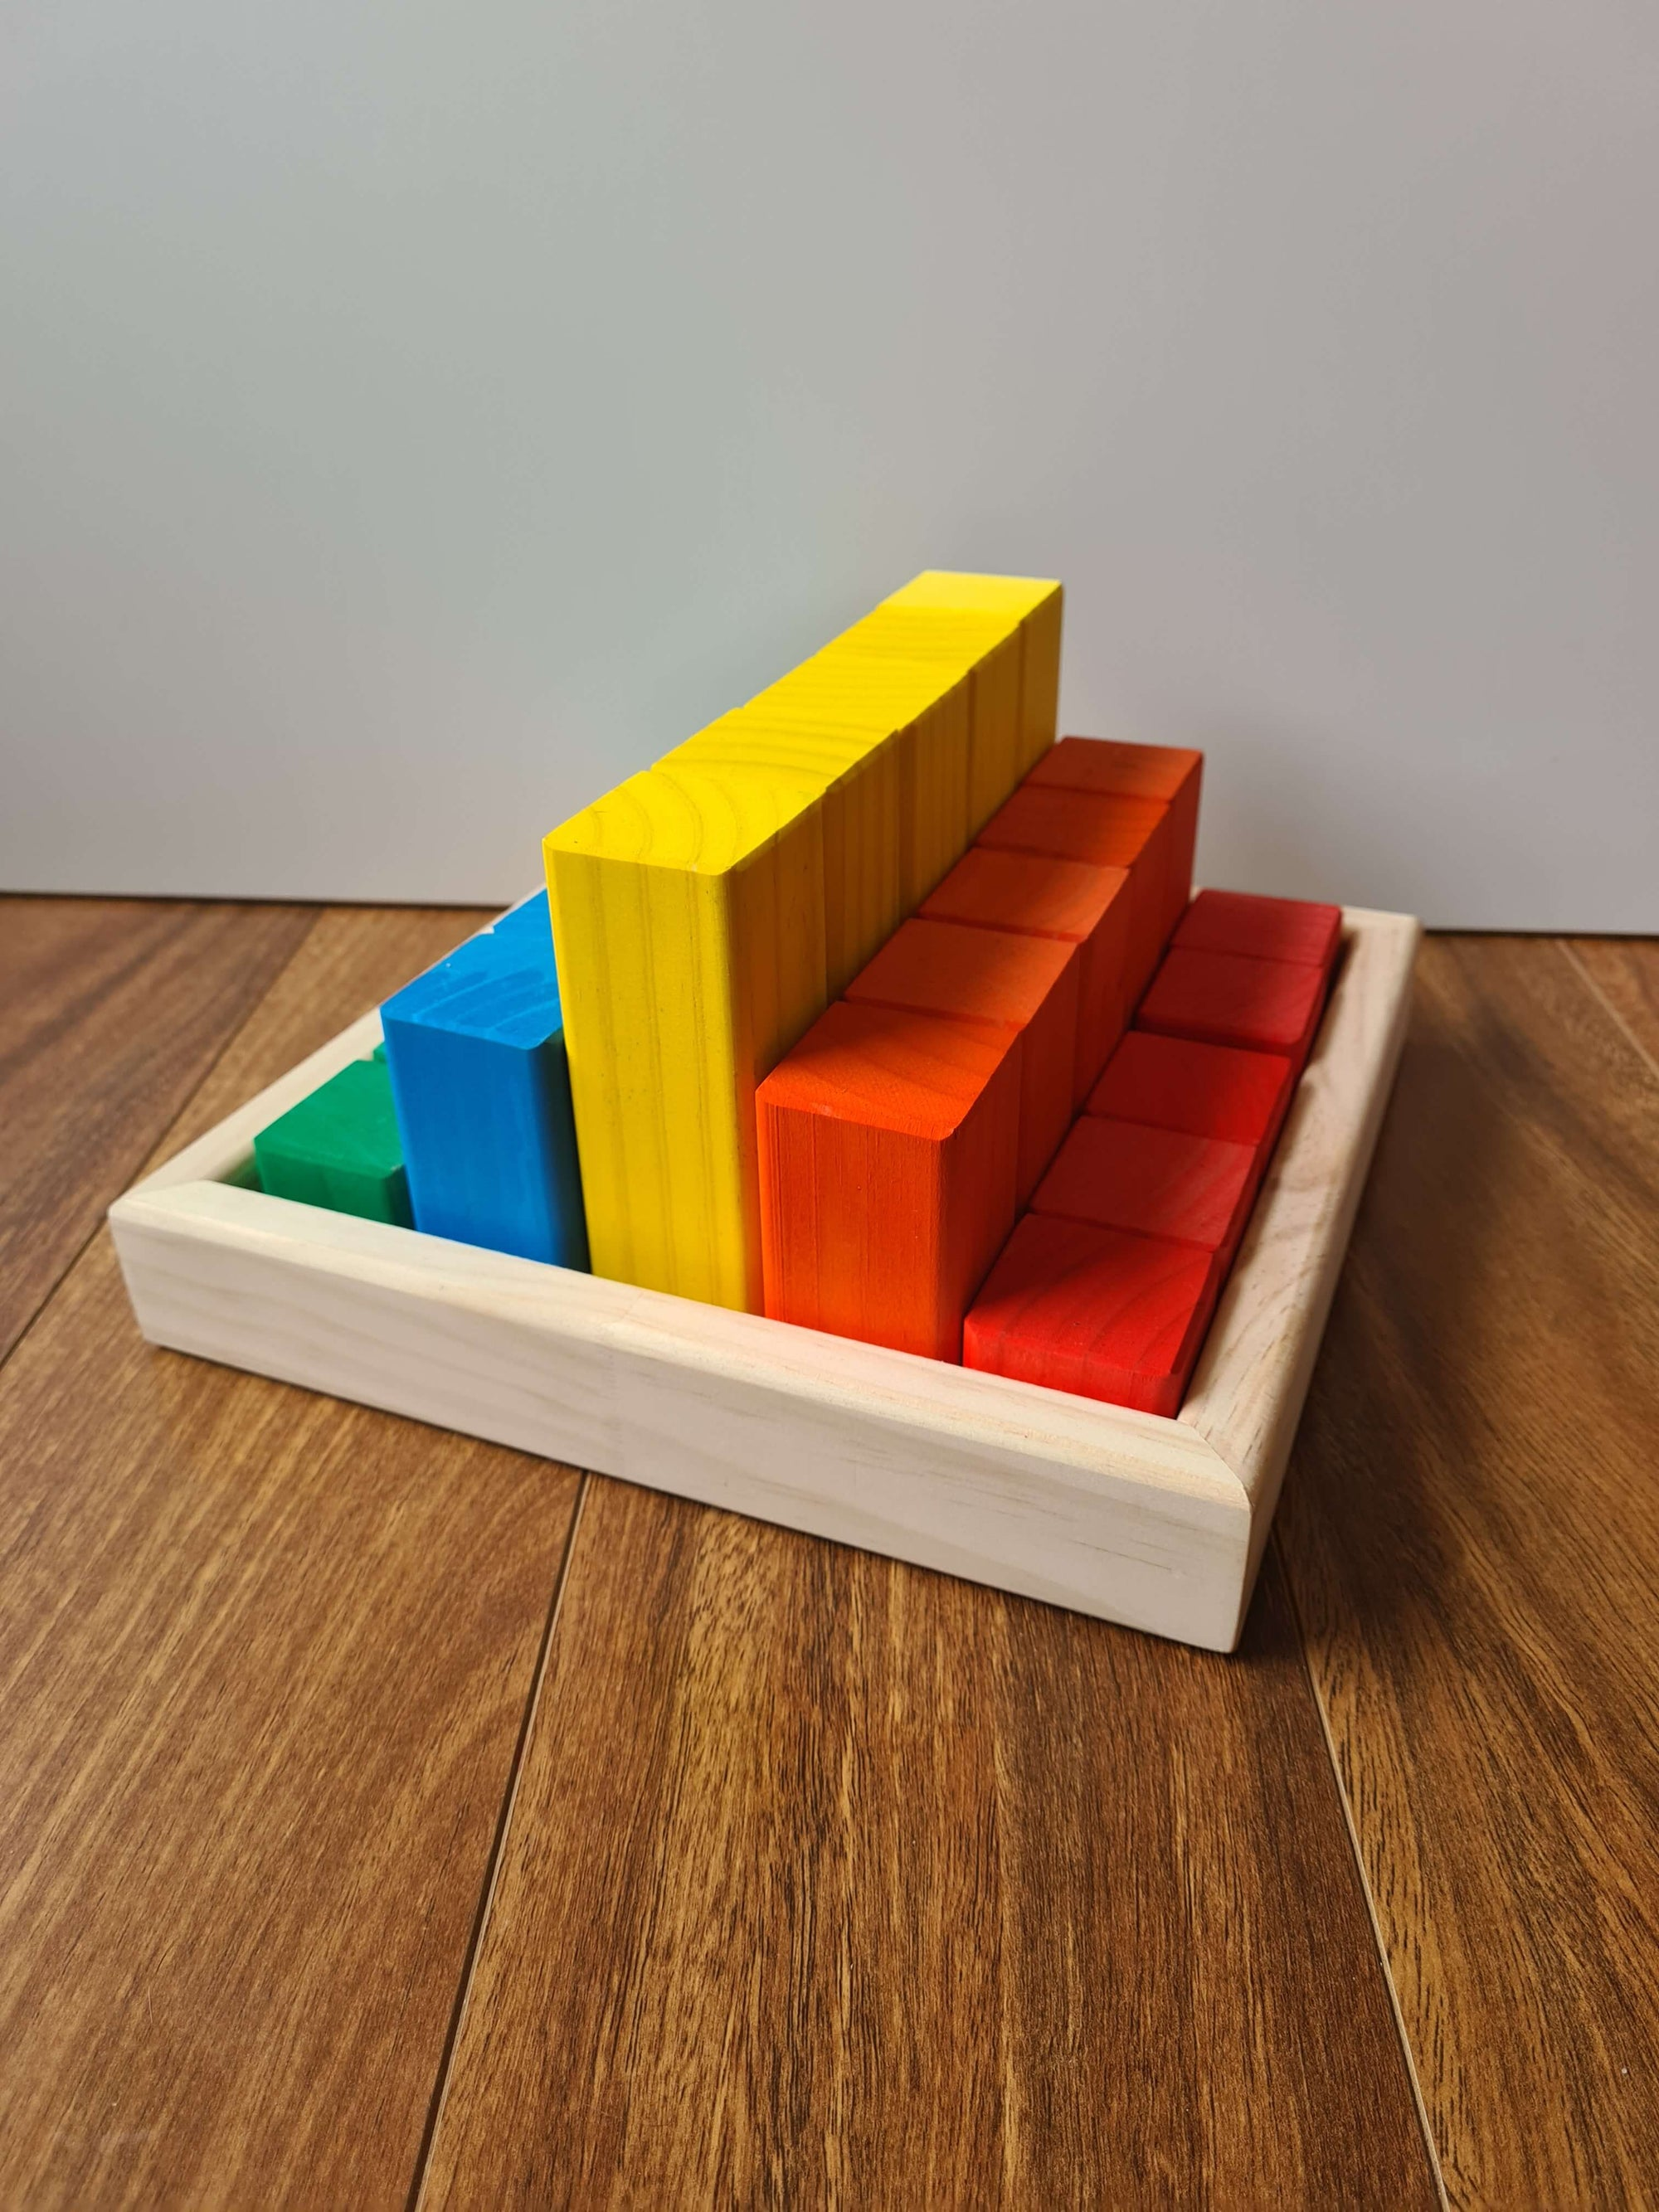 Coloured Building Blocks – 25 Piece Kit - Small